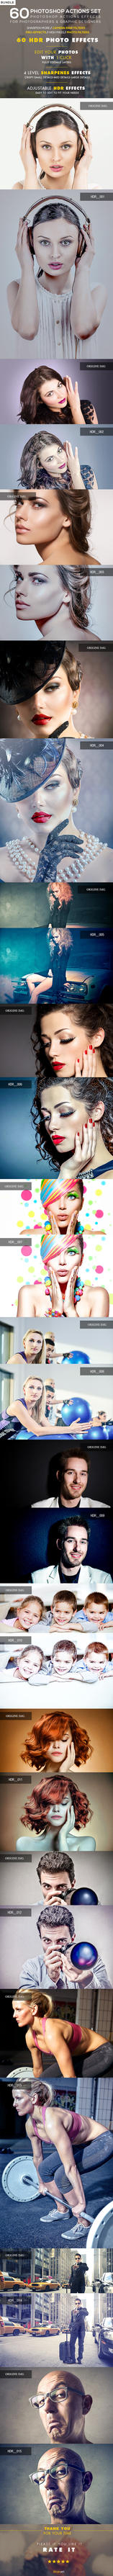 HDR Photo Effects Bundle by Hz-designer